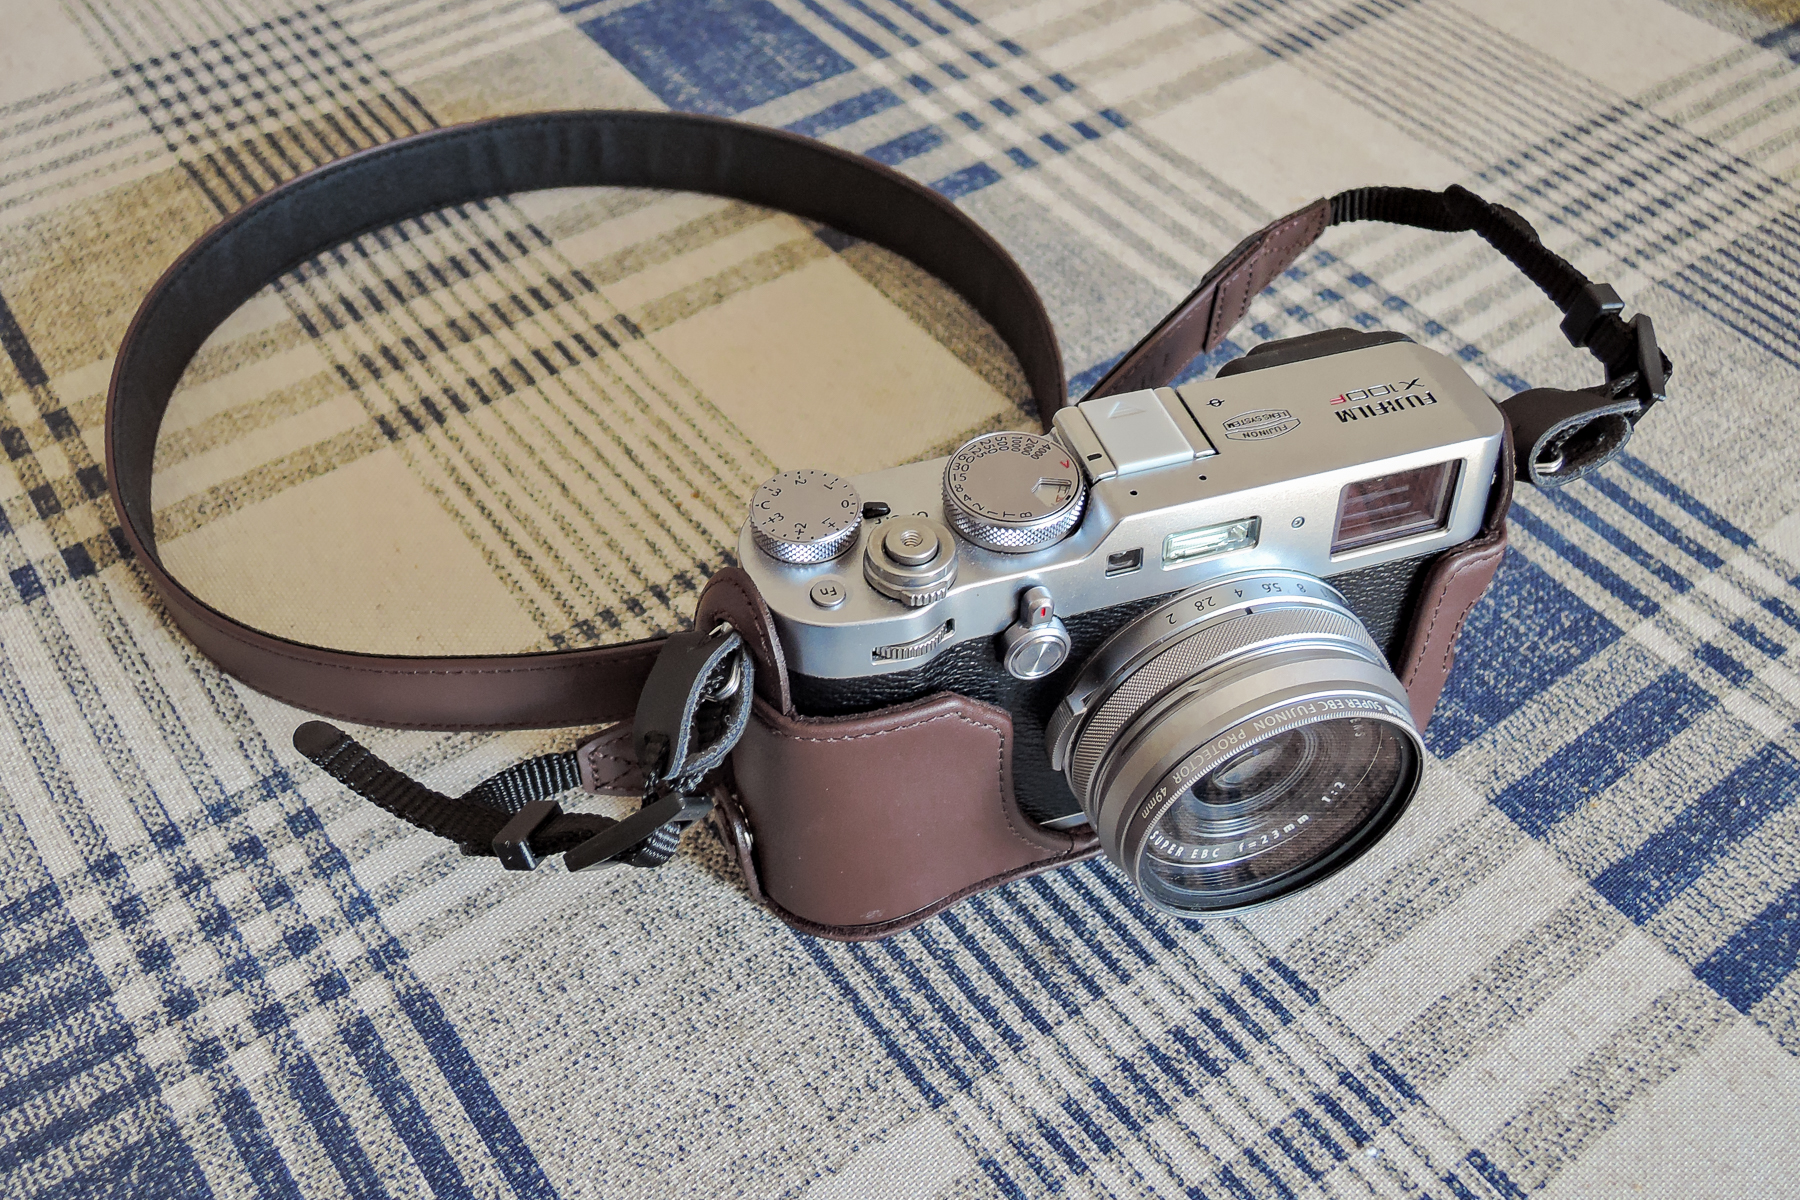 X100F in the leather case